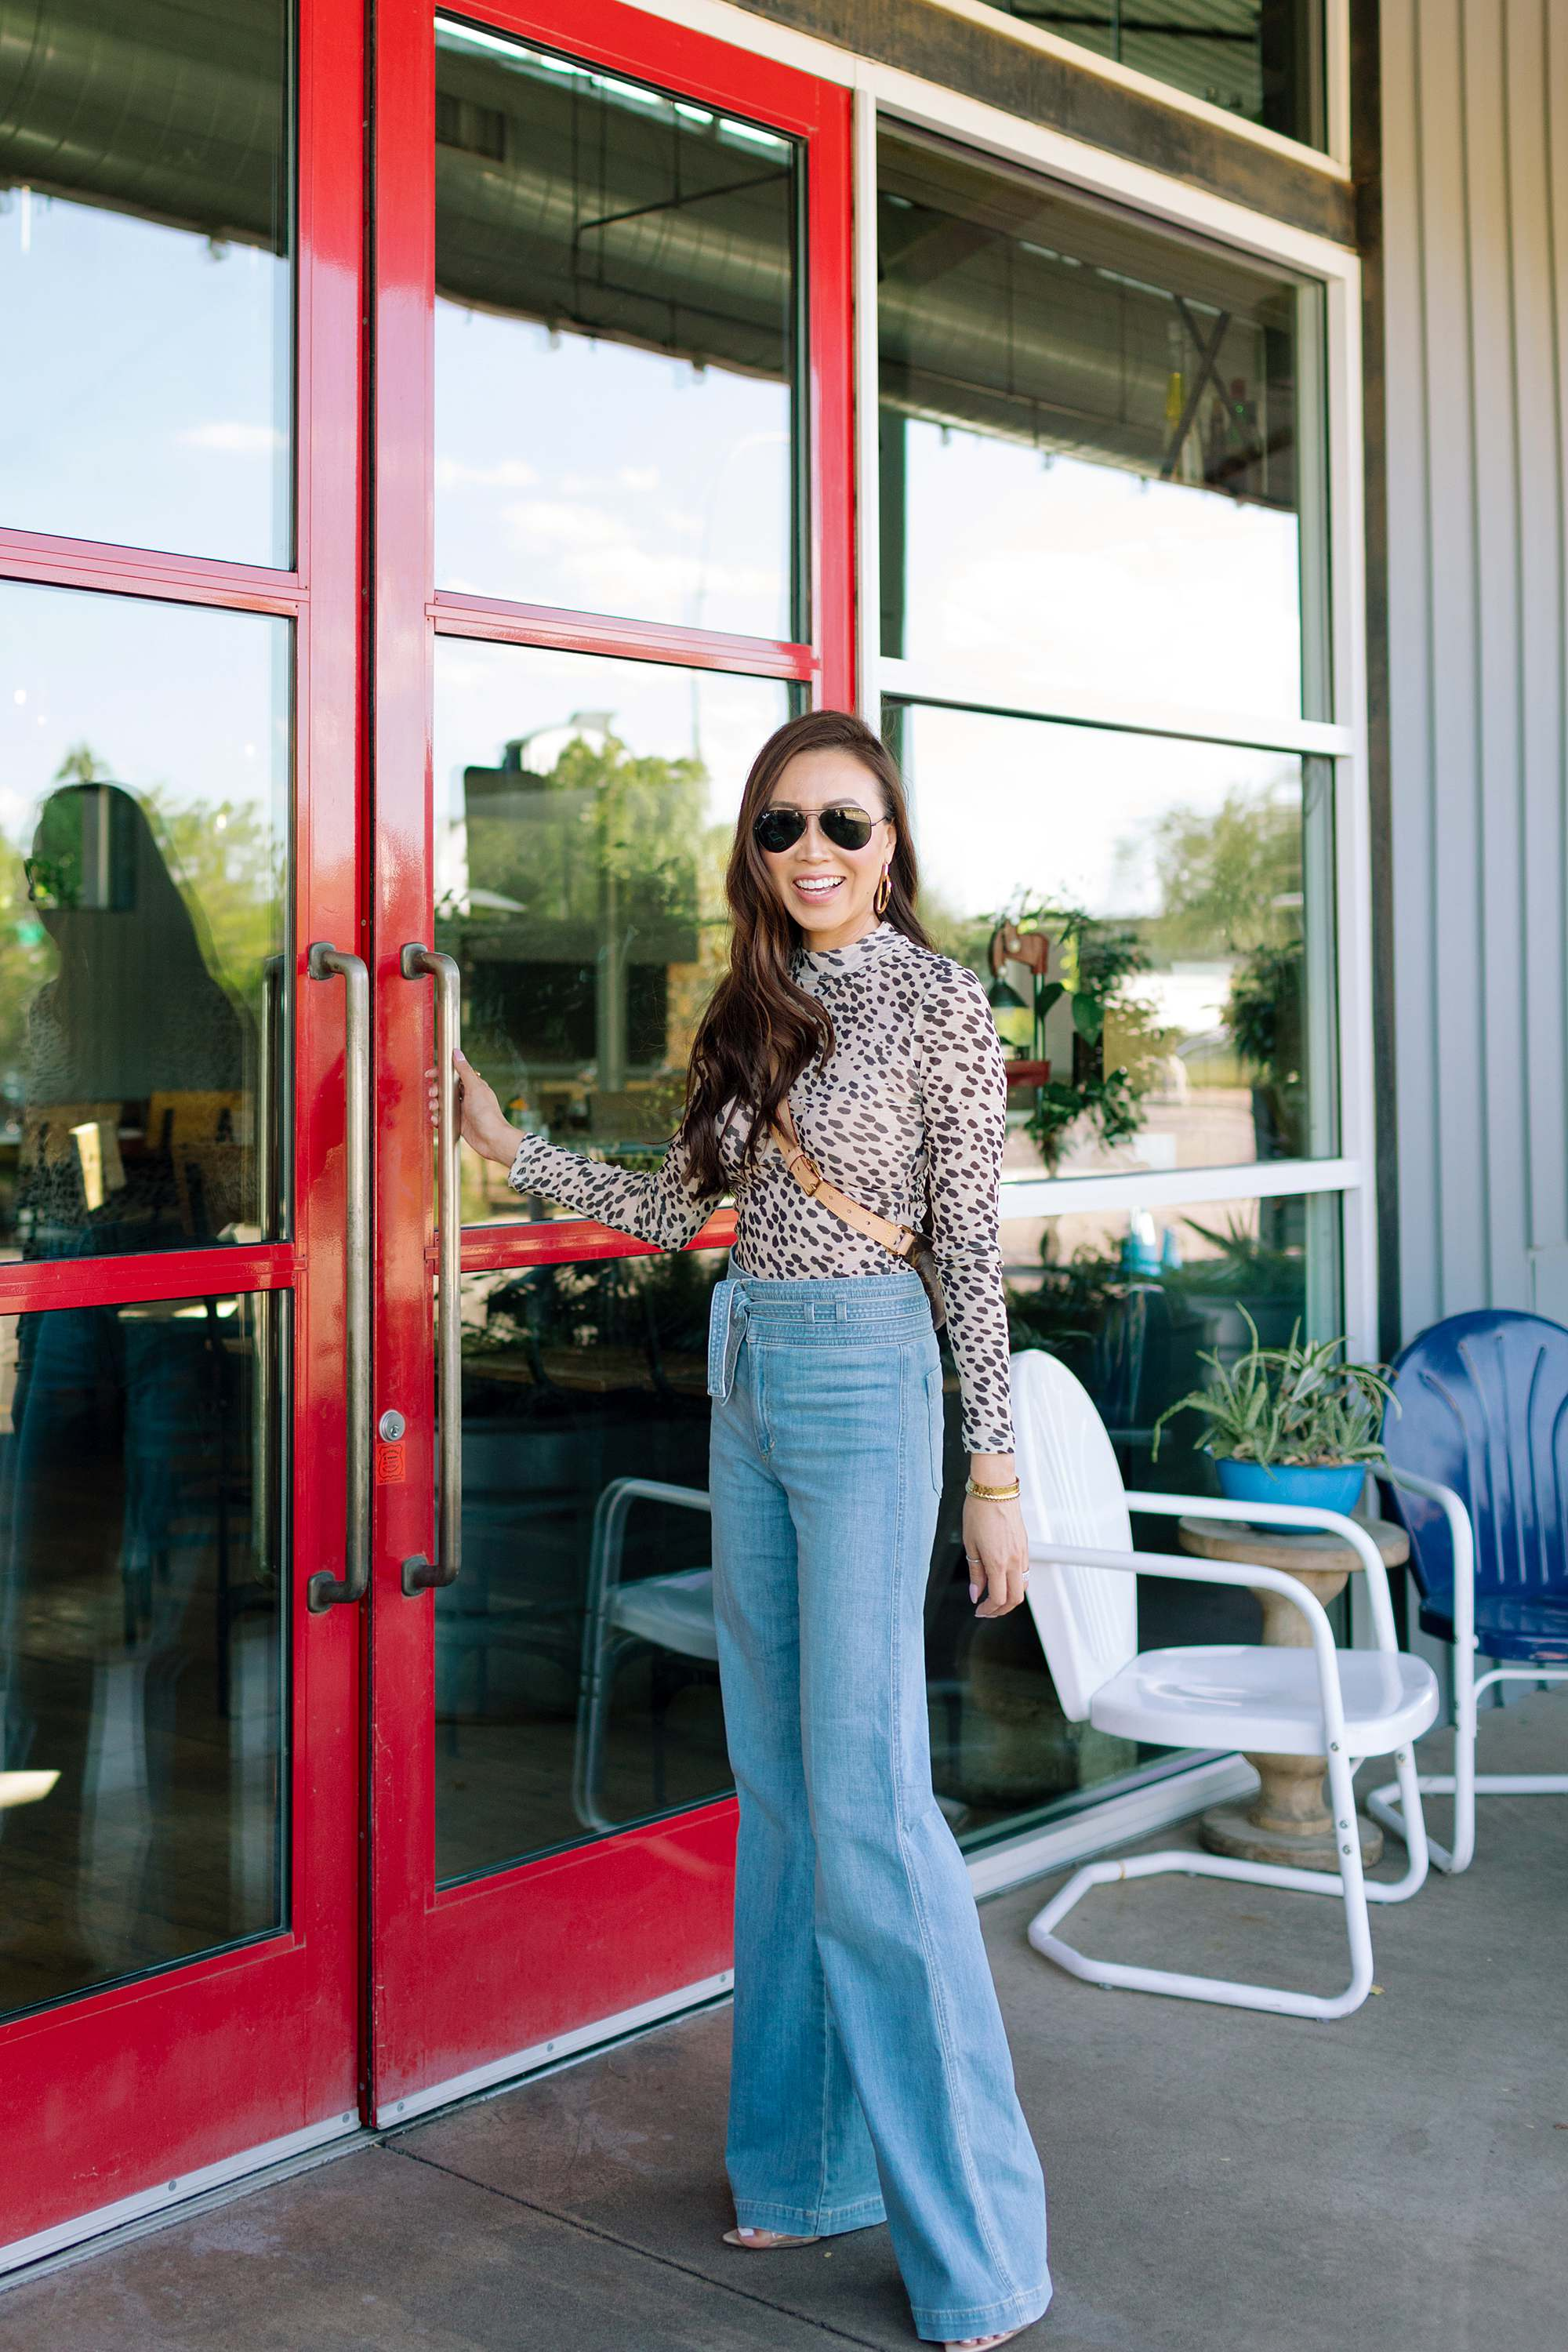 ray-ban classic aviator outfit at Kohl's woman wearing black framed aviator sunglasses outfit for fall